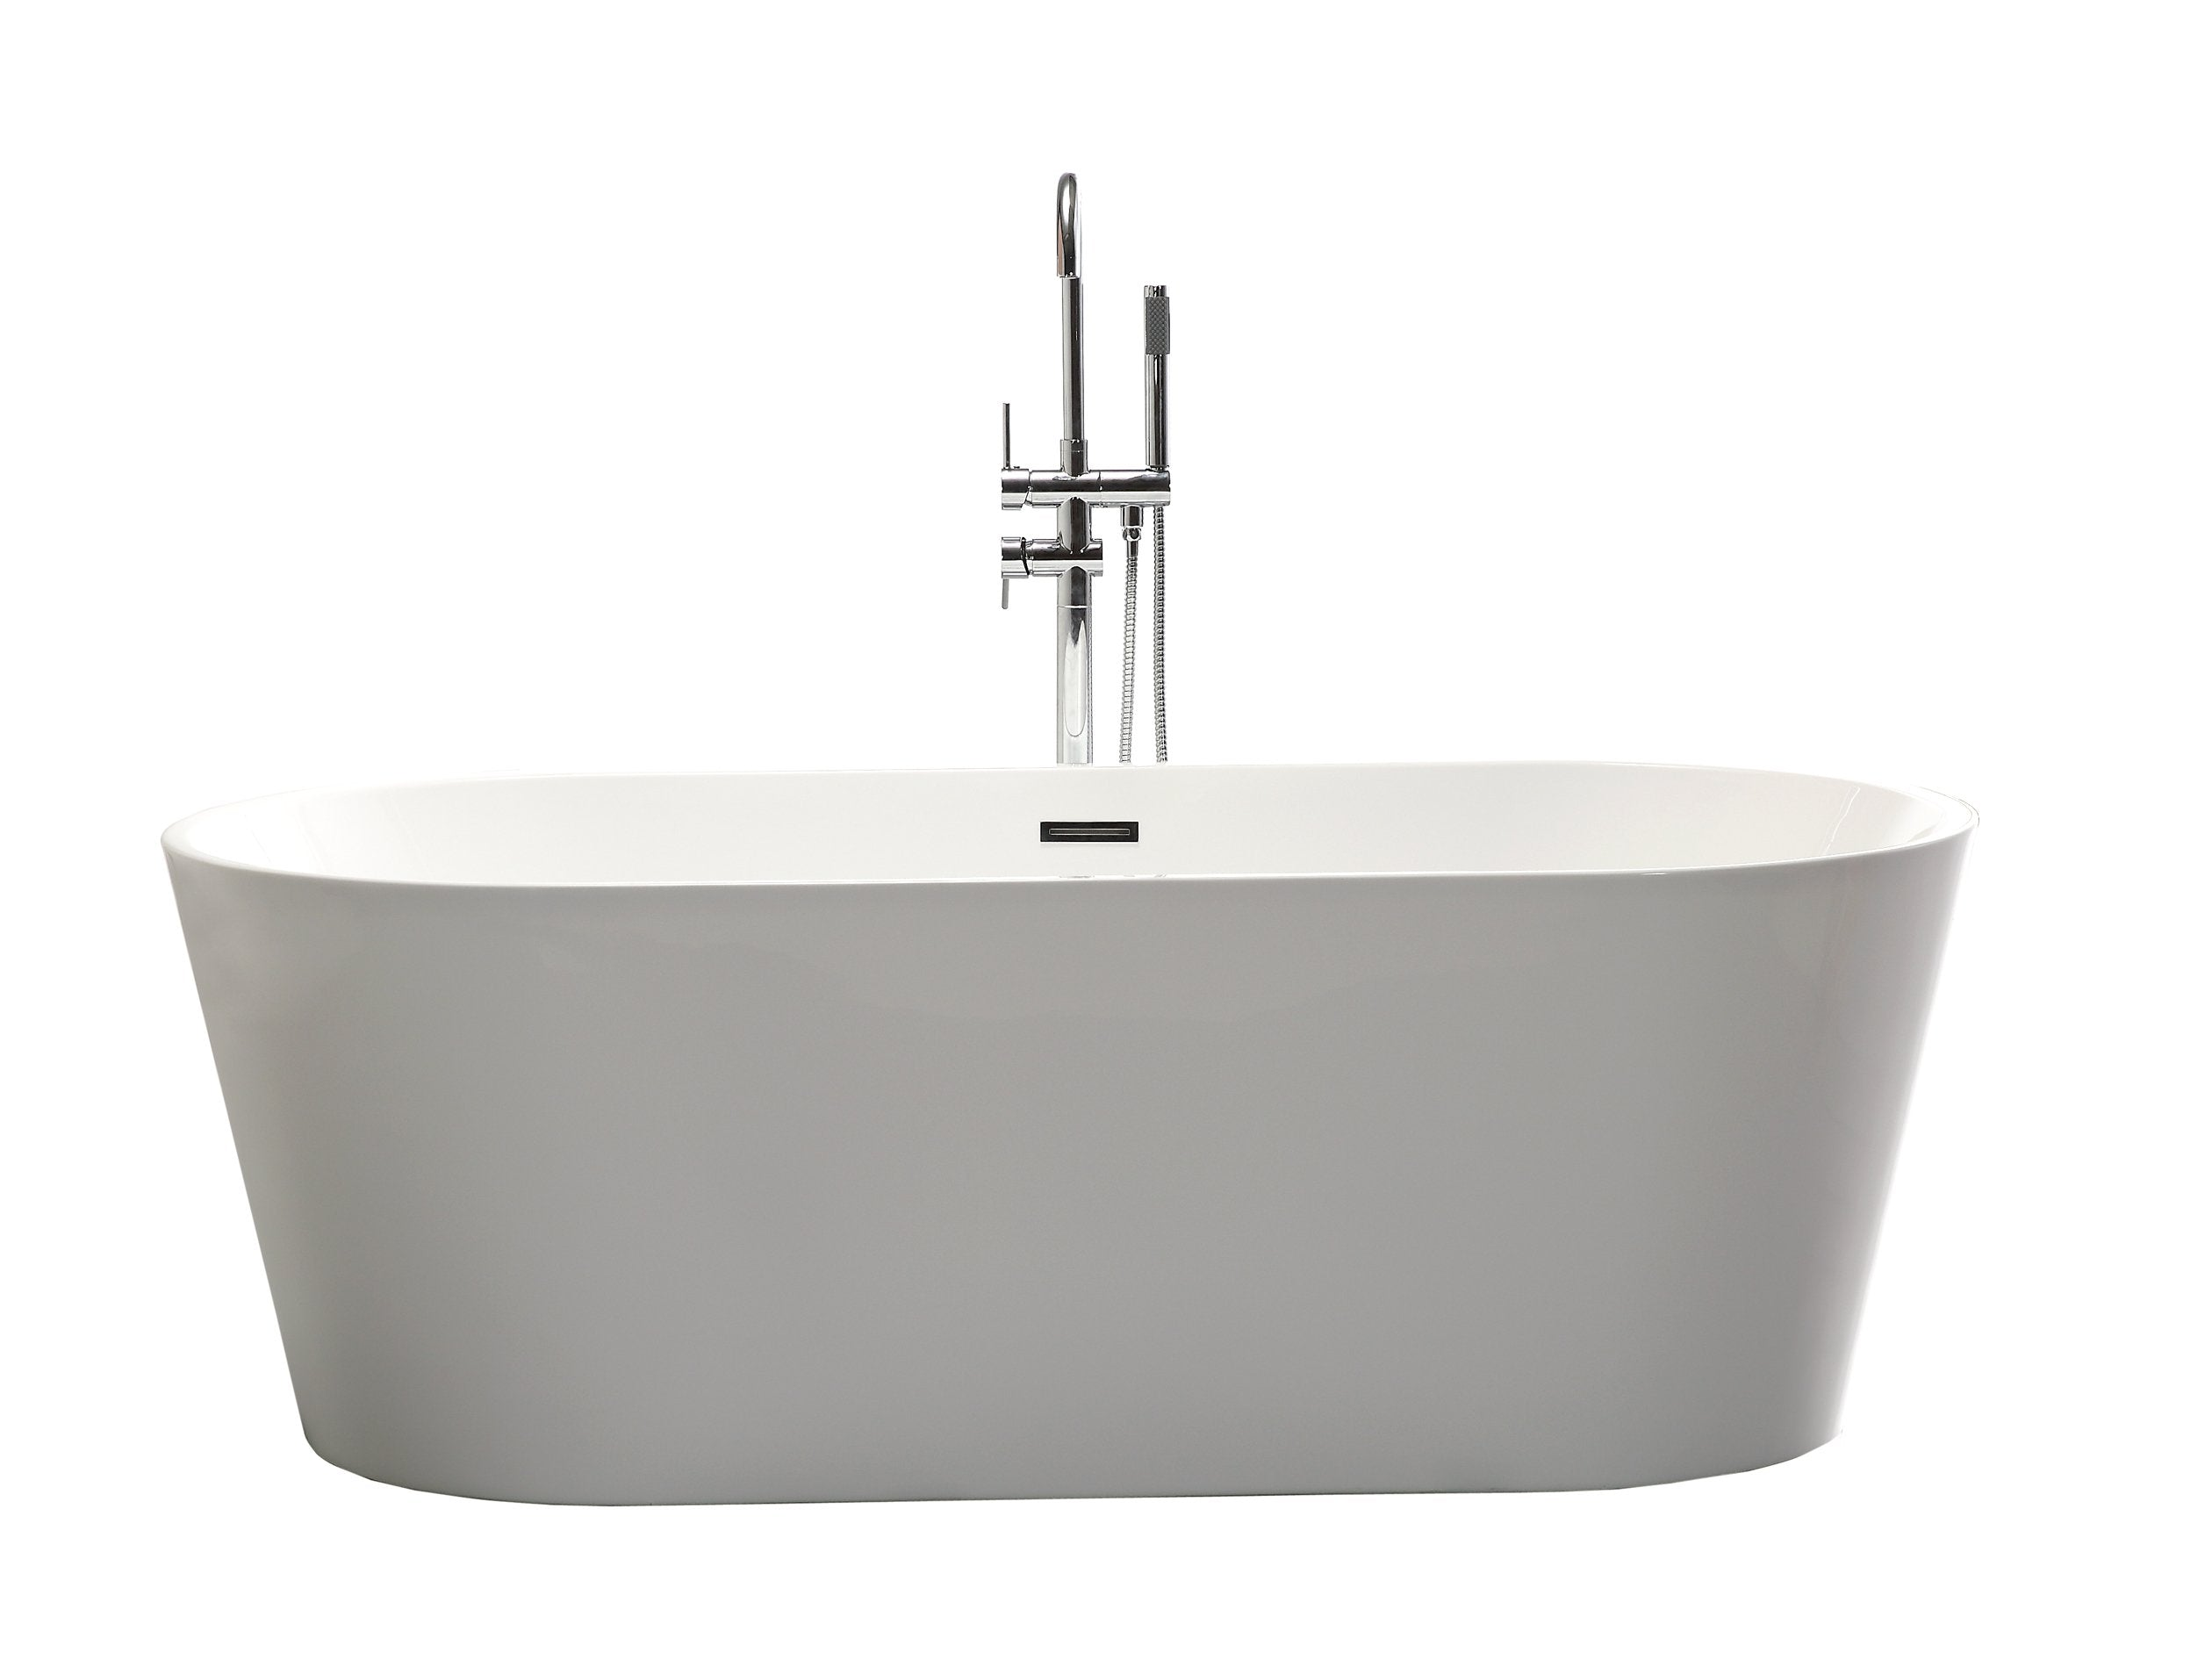 soaking com faucet image oyster drain installation freestanding for reversible arietta jacuzzi with bathtub